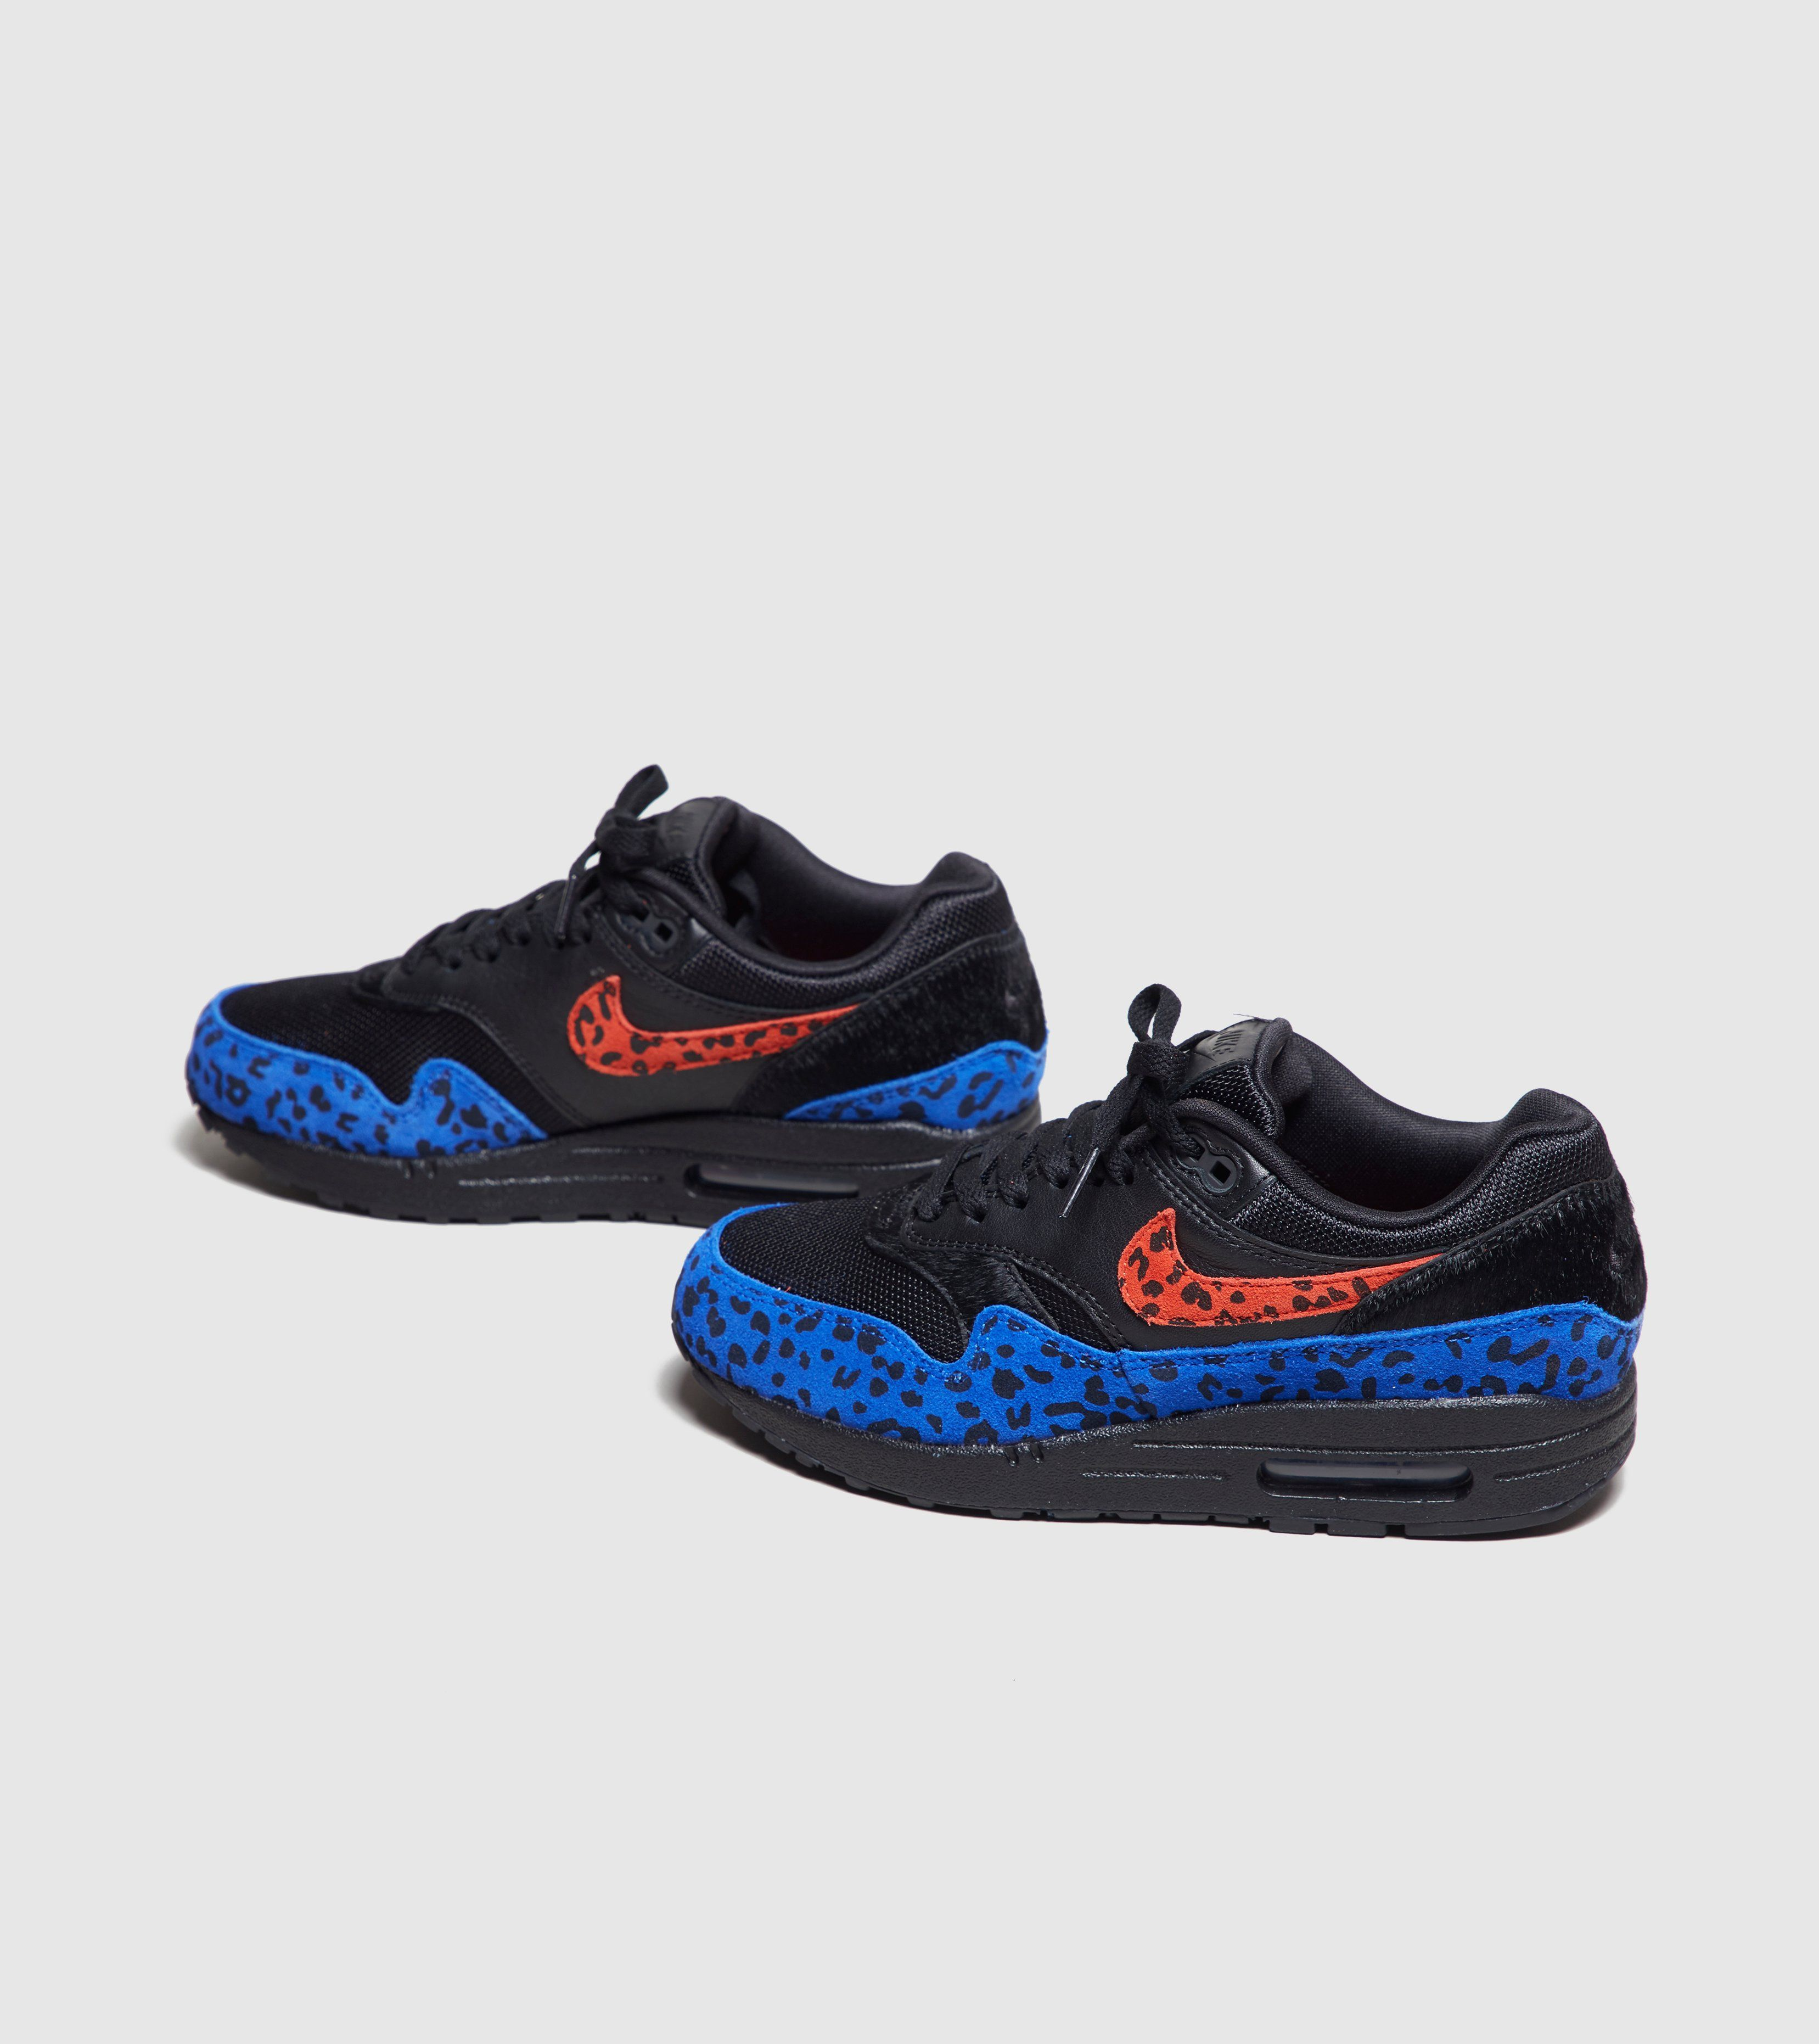 Nike Air Max 1 Premium 'Black Leopard' Women's